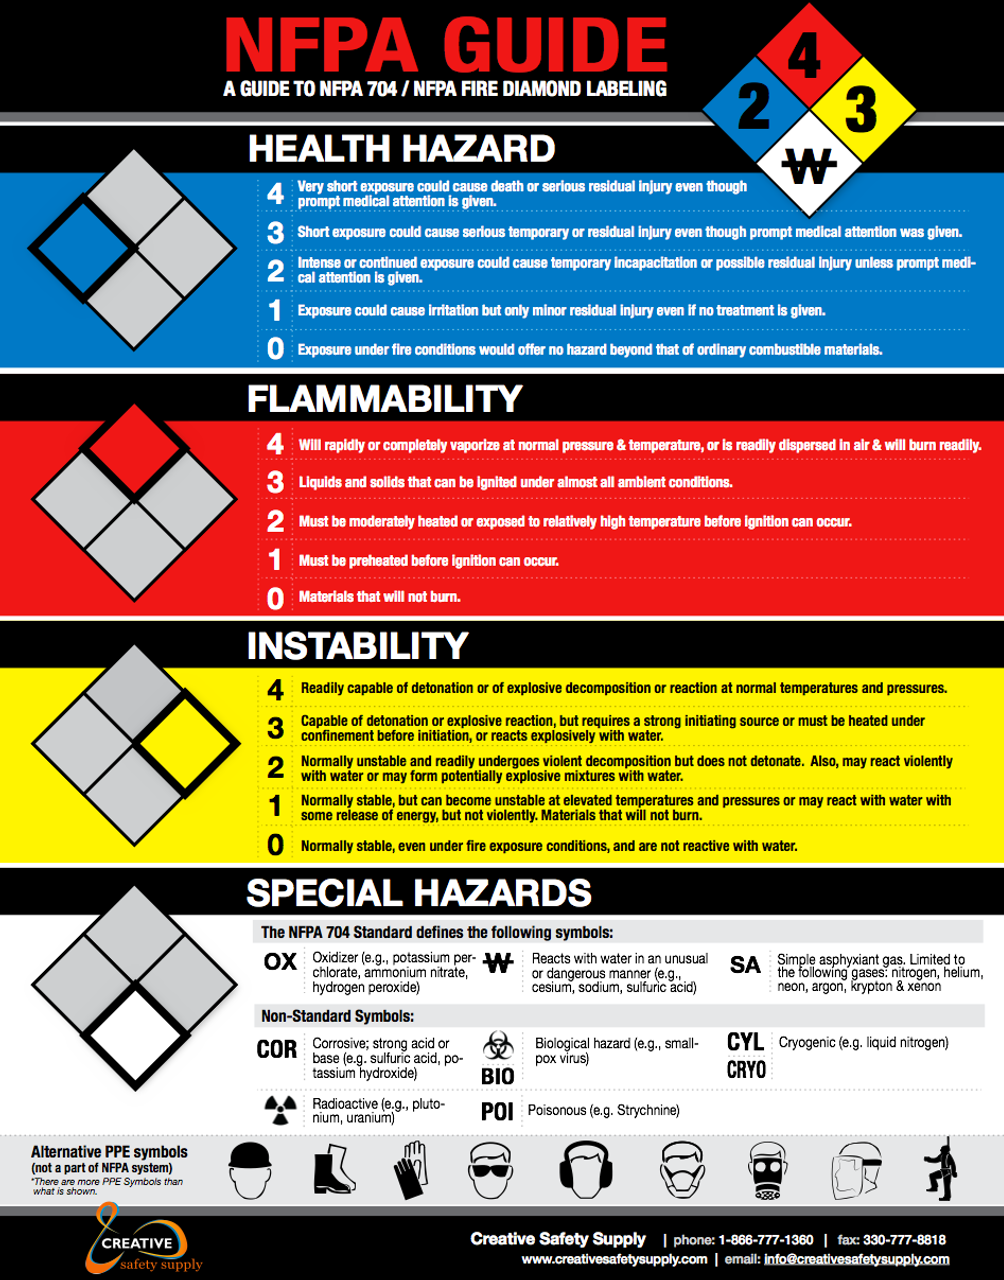 Nfpa 704 poster 5stoday 866 402 4776 nfpa 704 poster biocorpaavc Choice Image